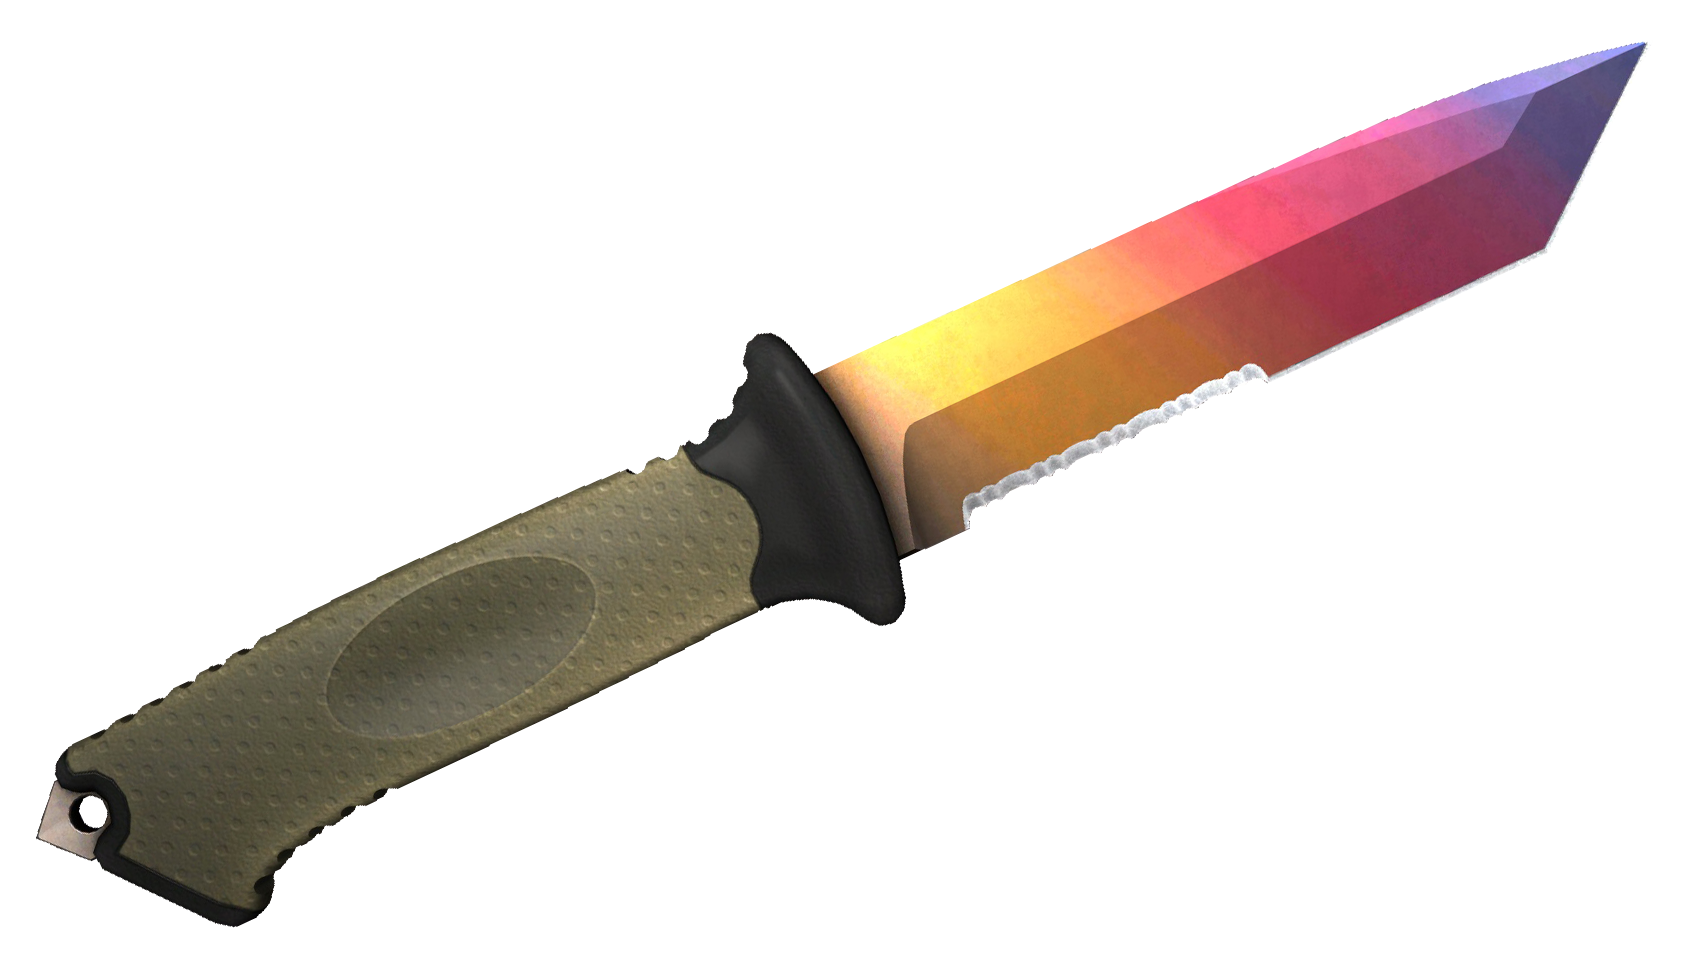 Ursus Knife Fade Large Rendering